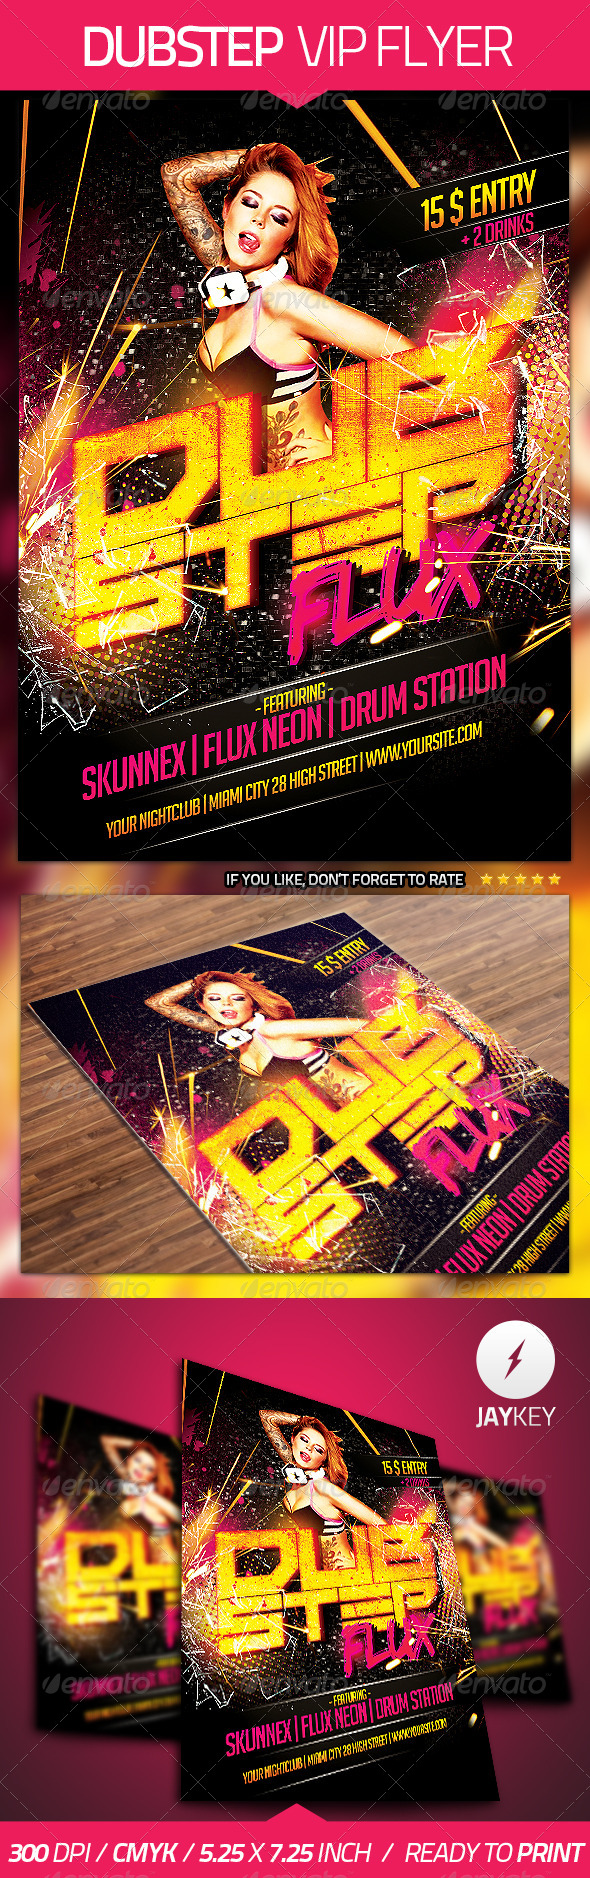 Dubstep Flyer Template - Clubs & Parties Events